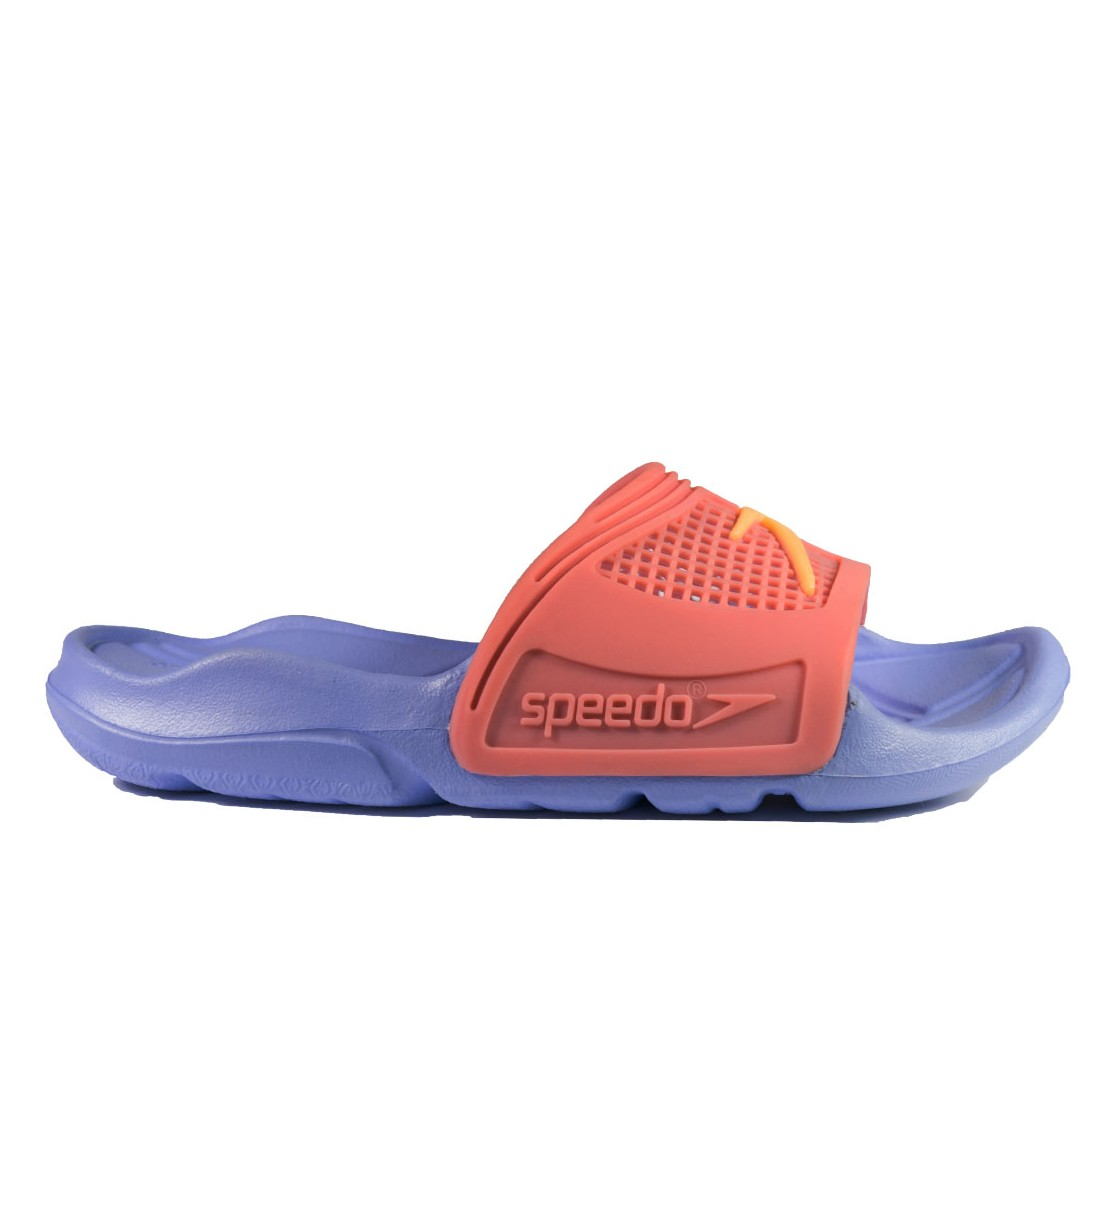 Speedo RAPID II POOLSHOE BOX JNR